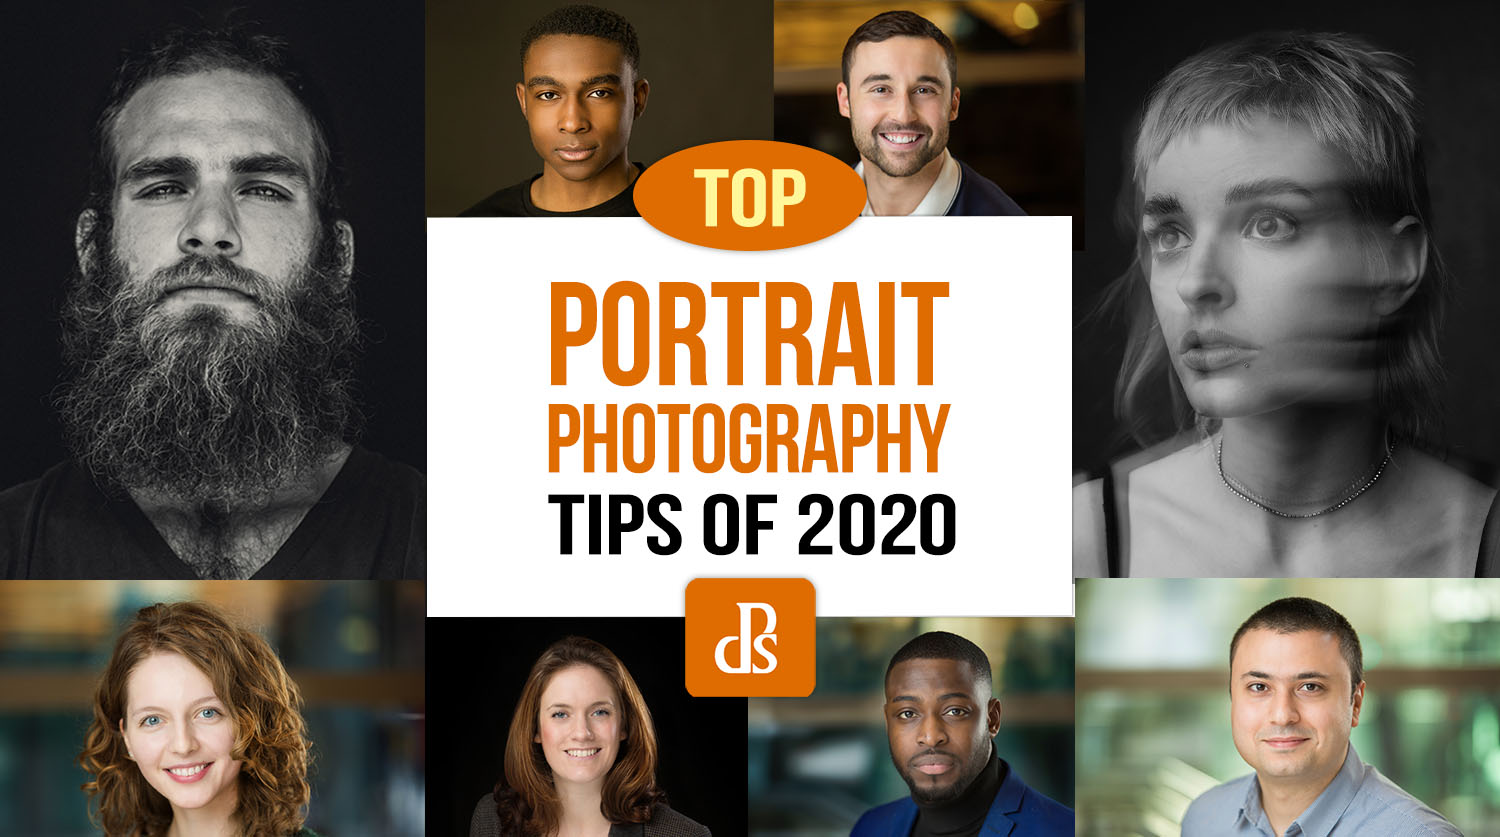 top portrait photography tips of 2020